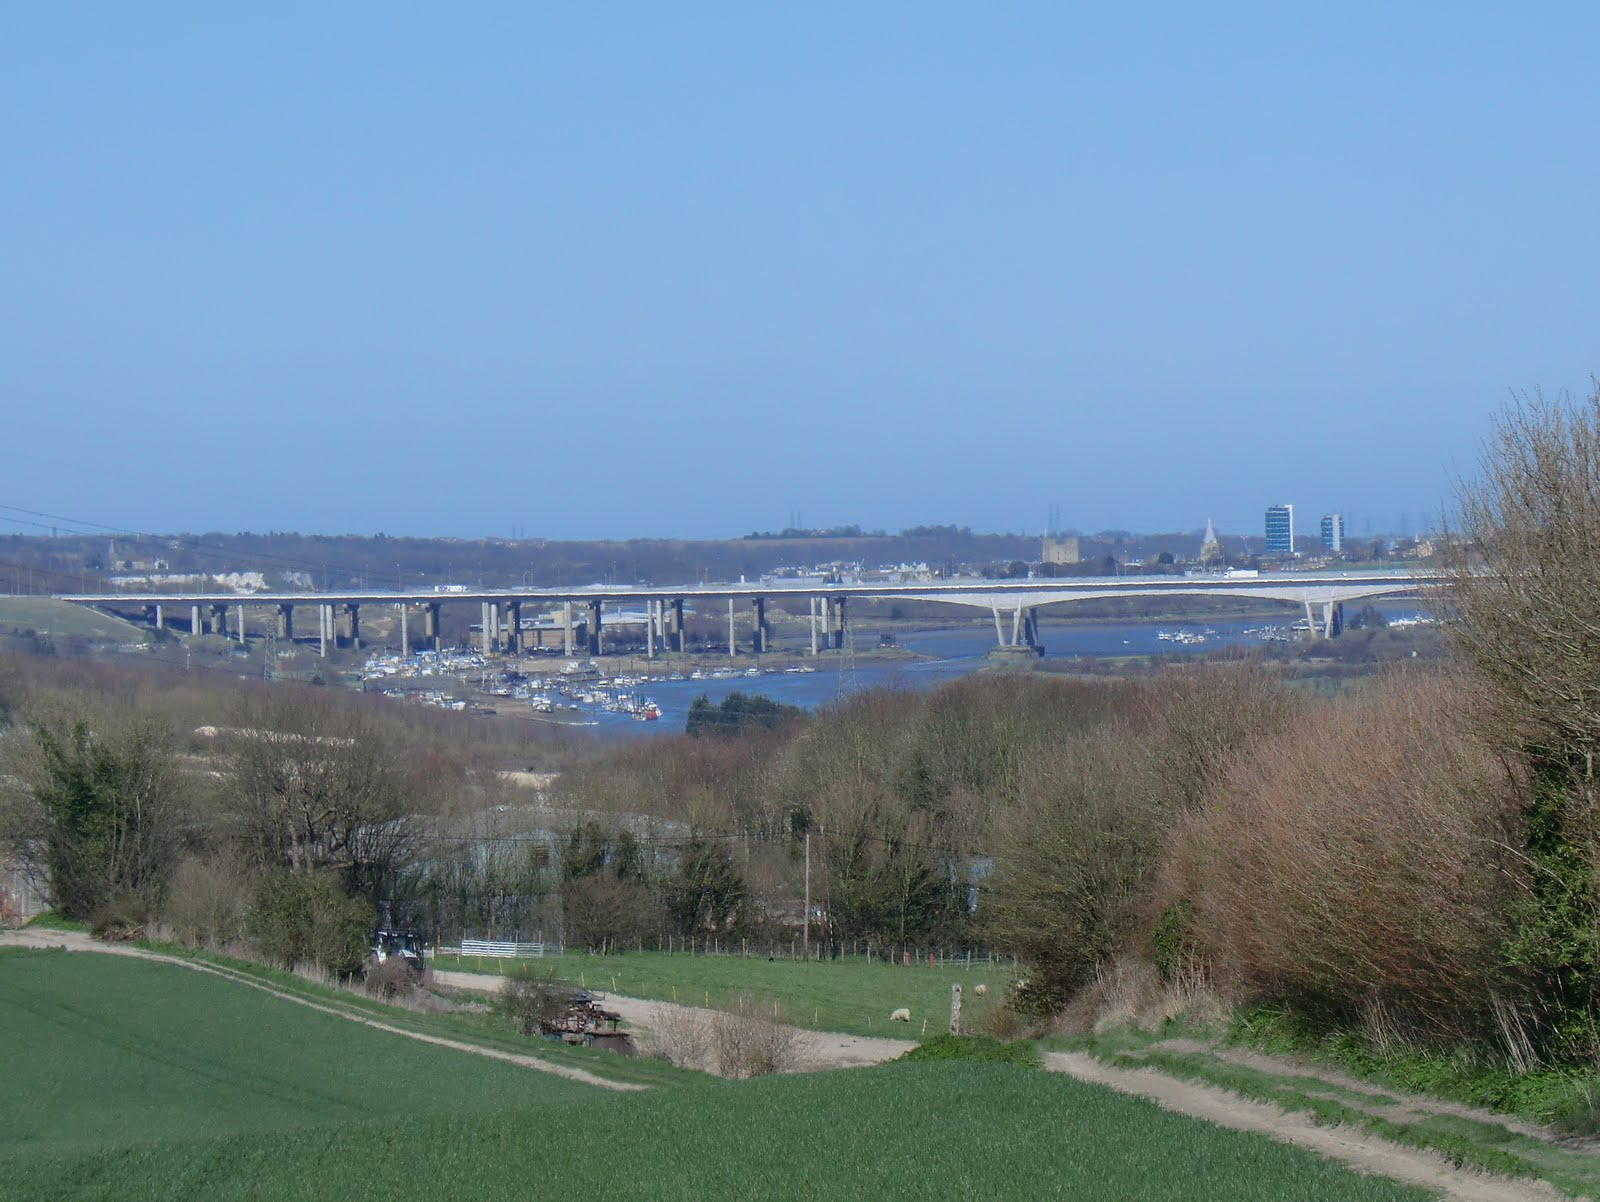 CIMG6282 Distant view of the Medway River Crossings